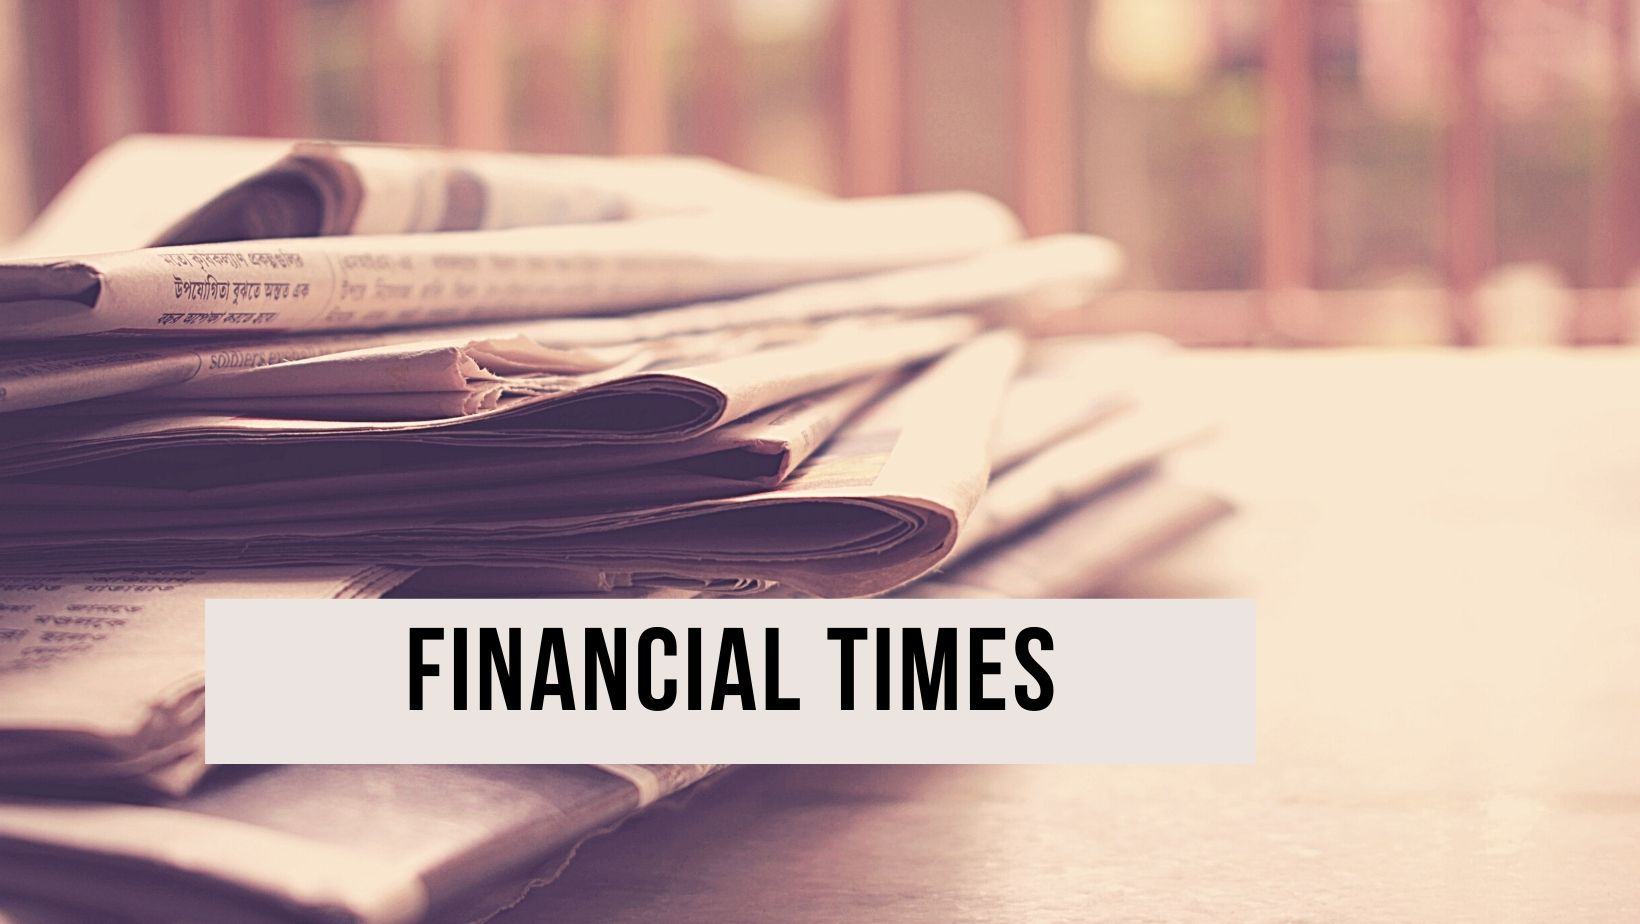 A picture of newspapers representing the financial times